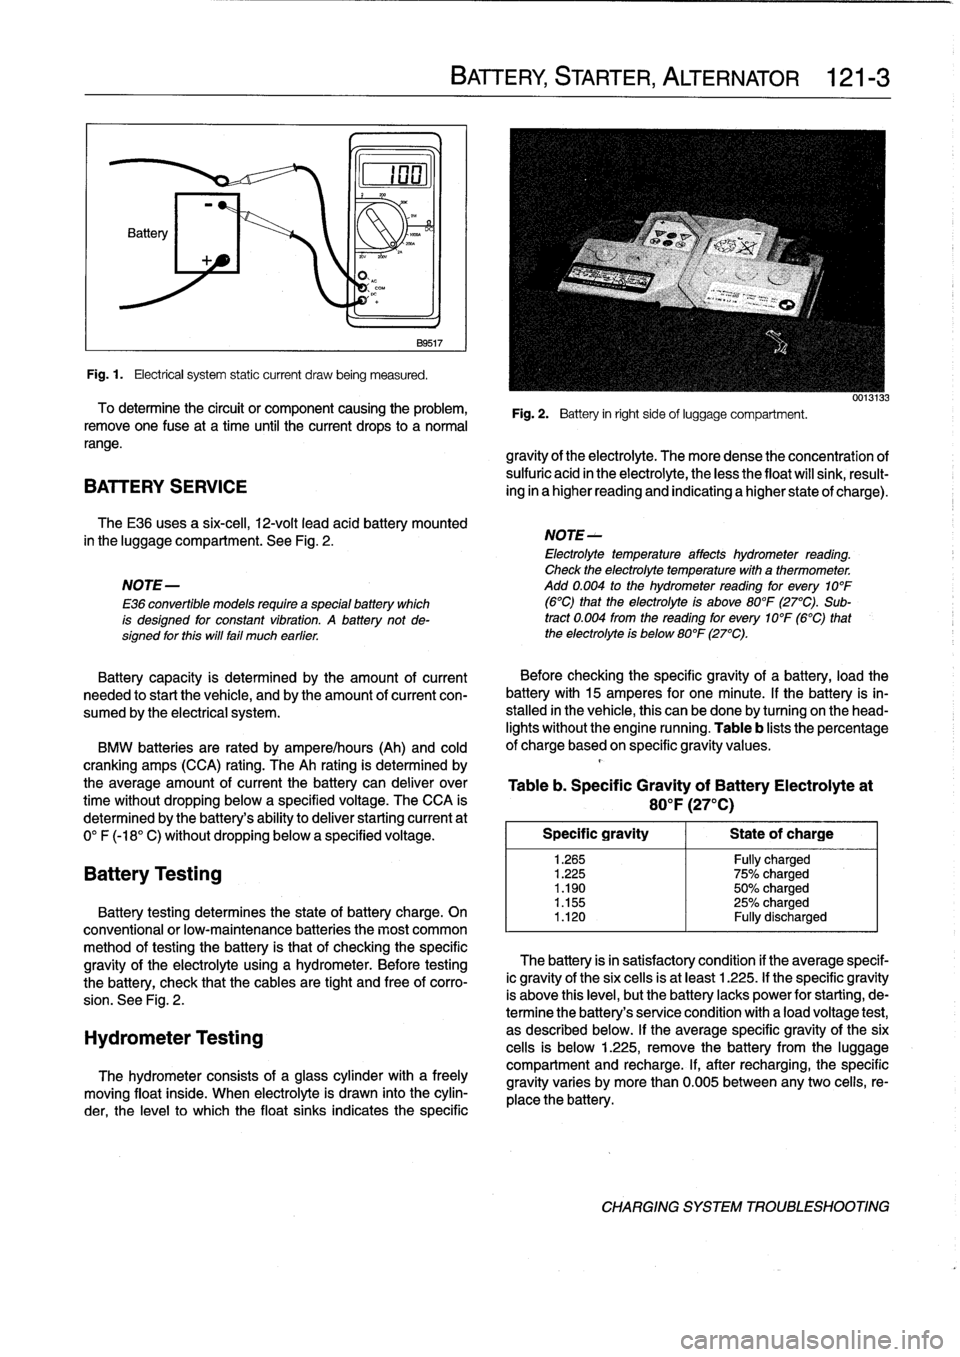 BMW 323i 1993 E36 Workshop Manual, Page 139